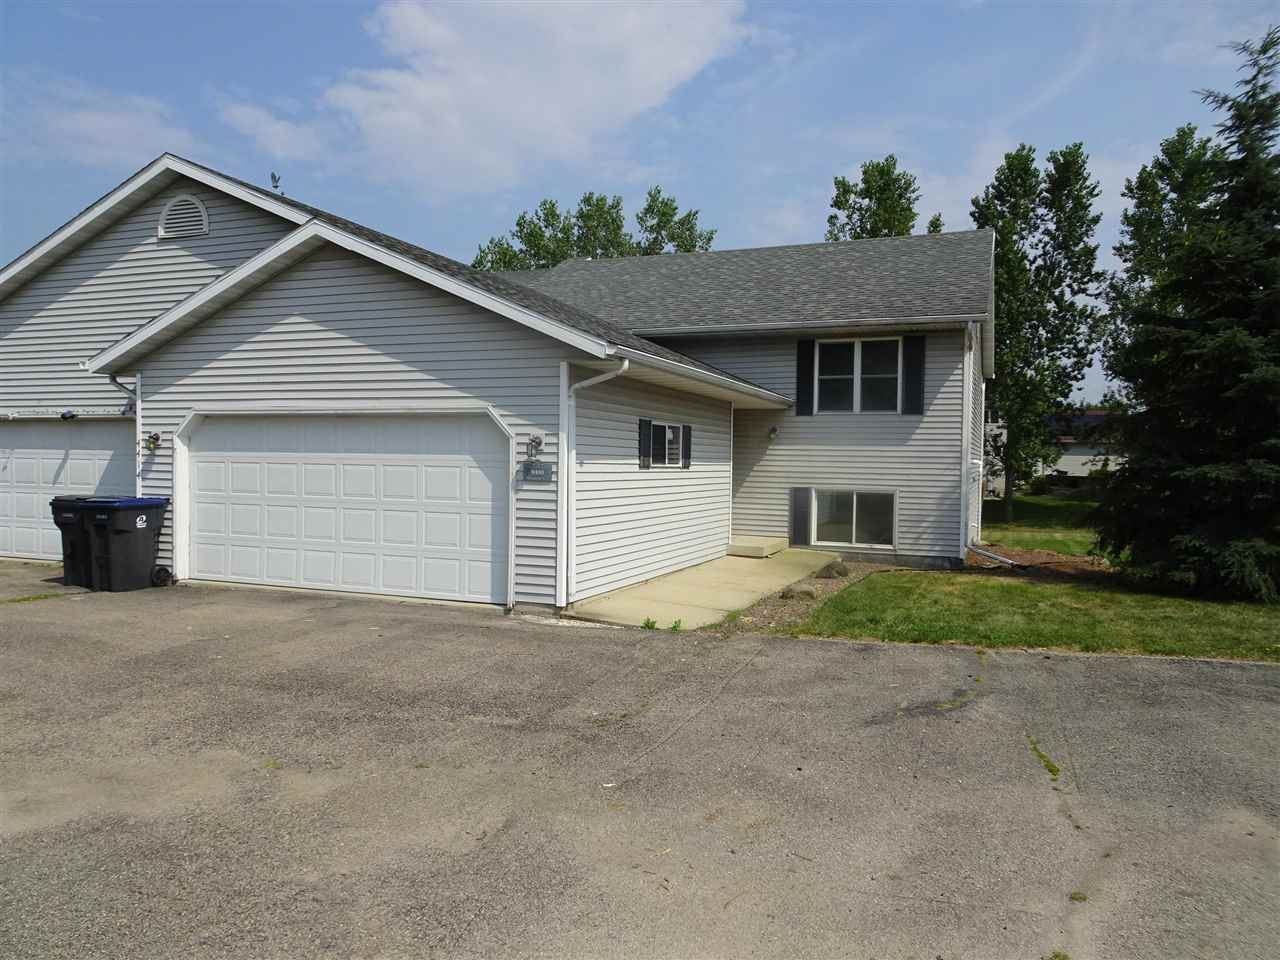 4410 Gray Rd, De Forest, WI 53532 - #: 1915305